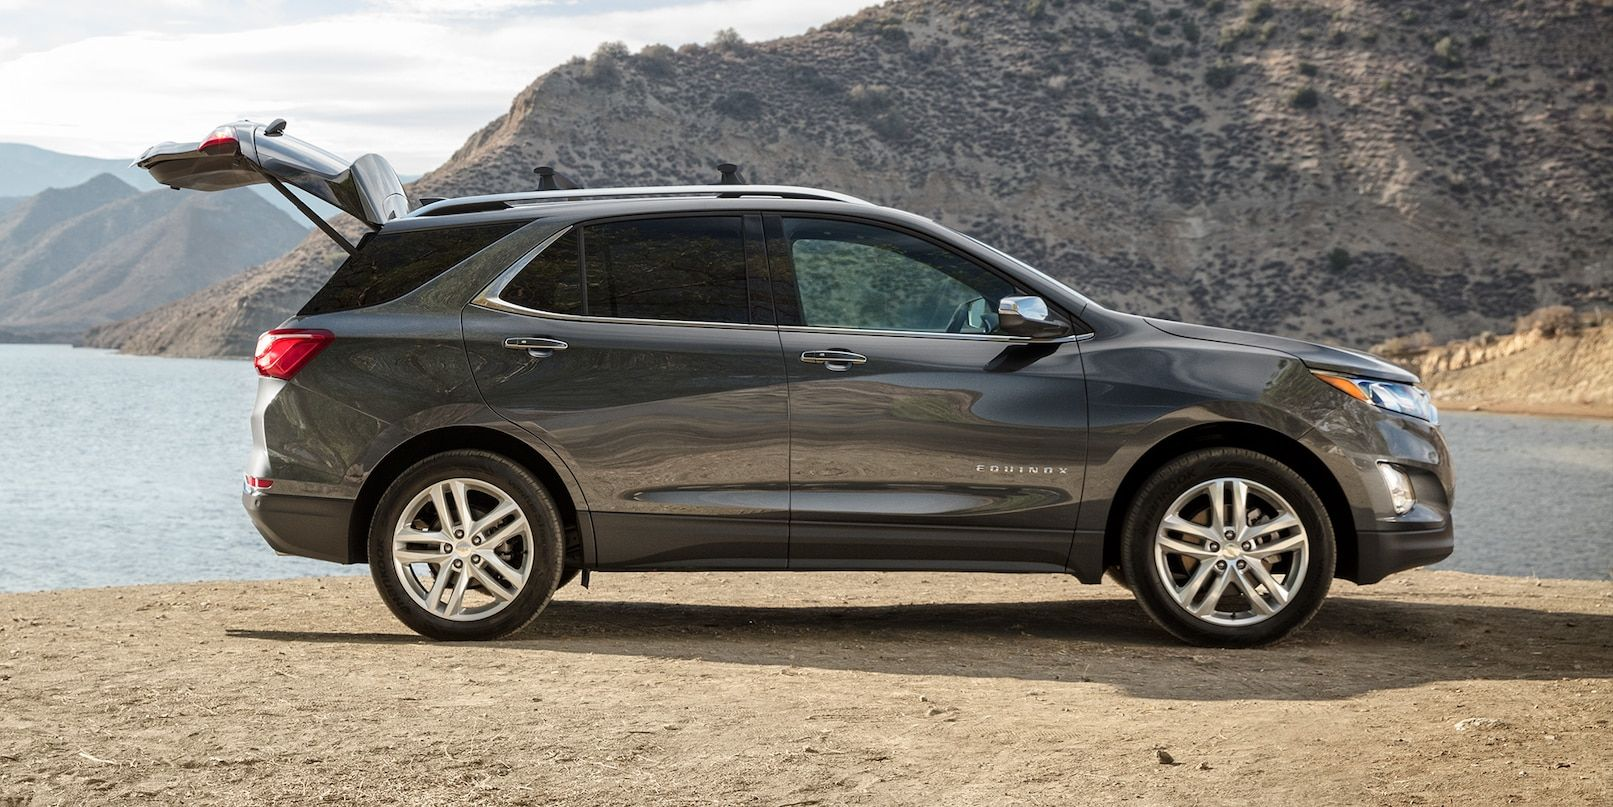 2019 Equinox Small Suv Exterior Side Photo With Trunk Open Chevy